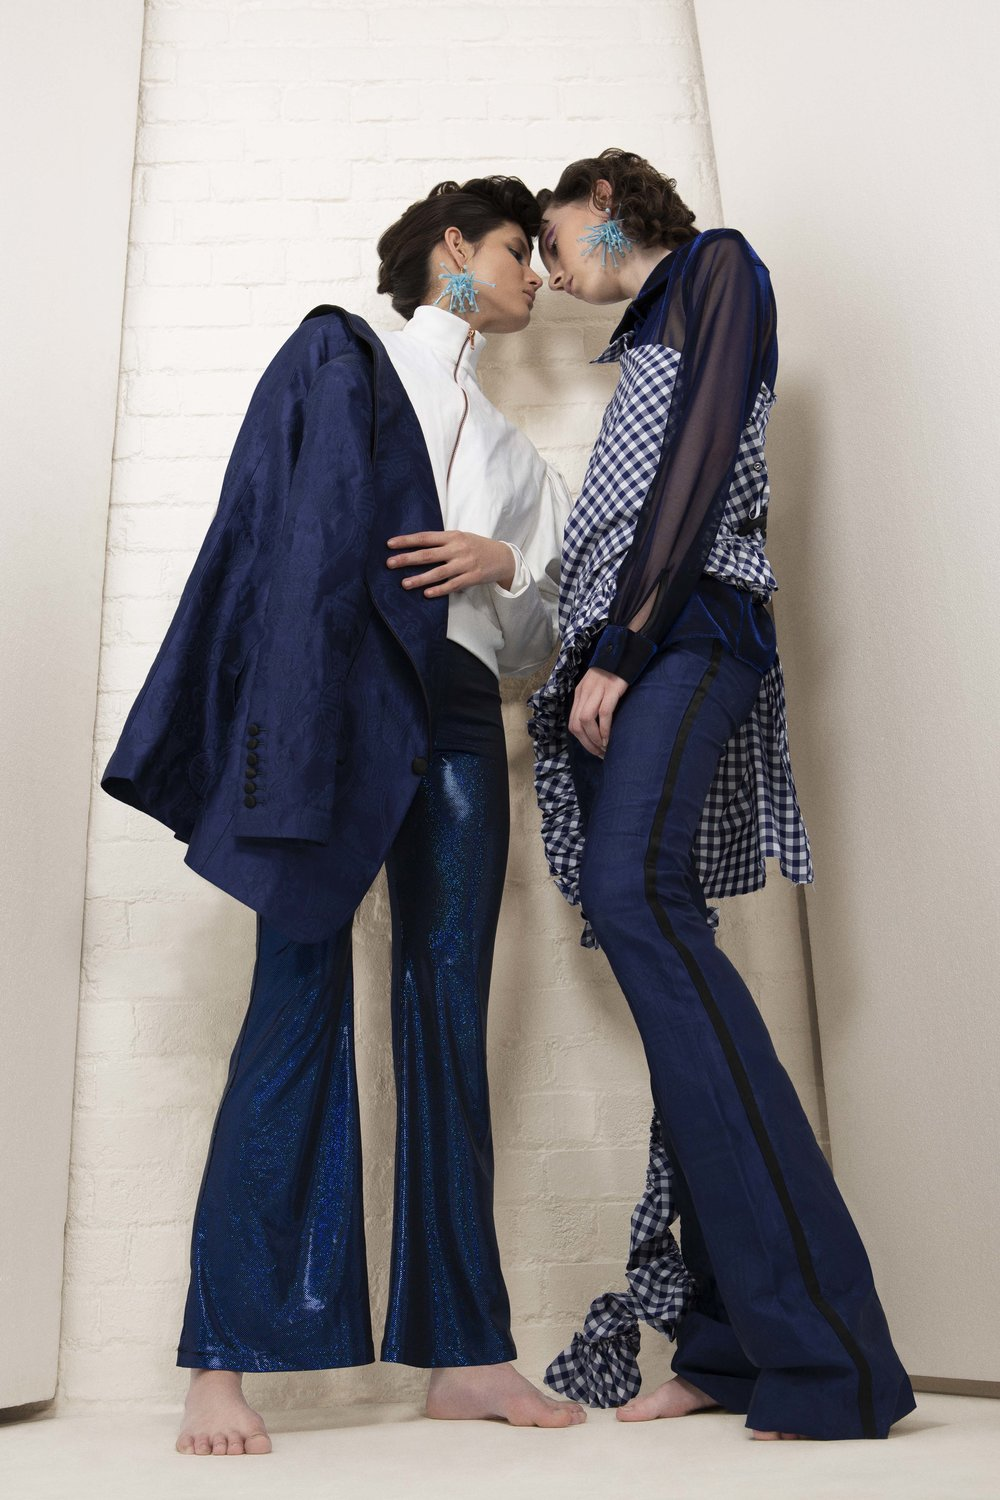 Sara (Left) : Jacket – SADIE CLAYTON Blazer – MALAN BRETON Pants – ROKIT Earring – KRISTY WARD (YOUNG BRITISH DESIGNERS) Footwear – STINE GOYA     Anotonie (Right) : Shirt – TRAMP IN DISGUISE Top – LES ANIMAUX Pants – MALAN BRETON Earring – KRISTY WARD (YOUNG BRITISH DESIGNERS) Footwear – STINE GOYA